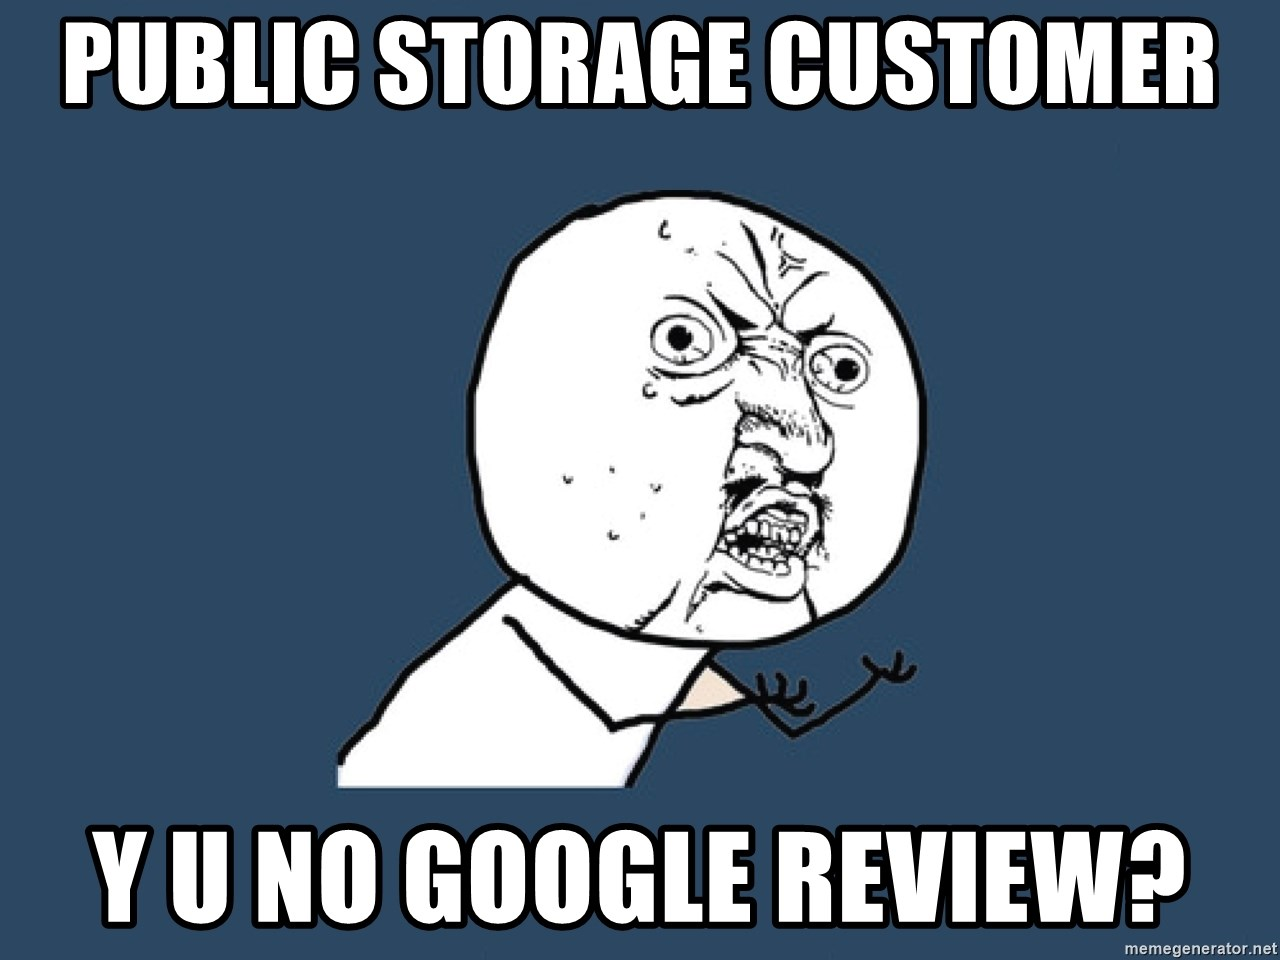 public storage customer y u no google review? - Y U No